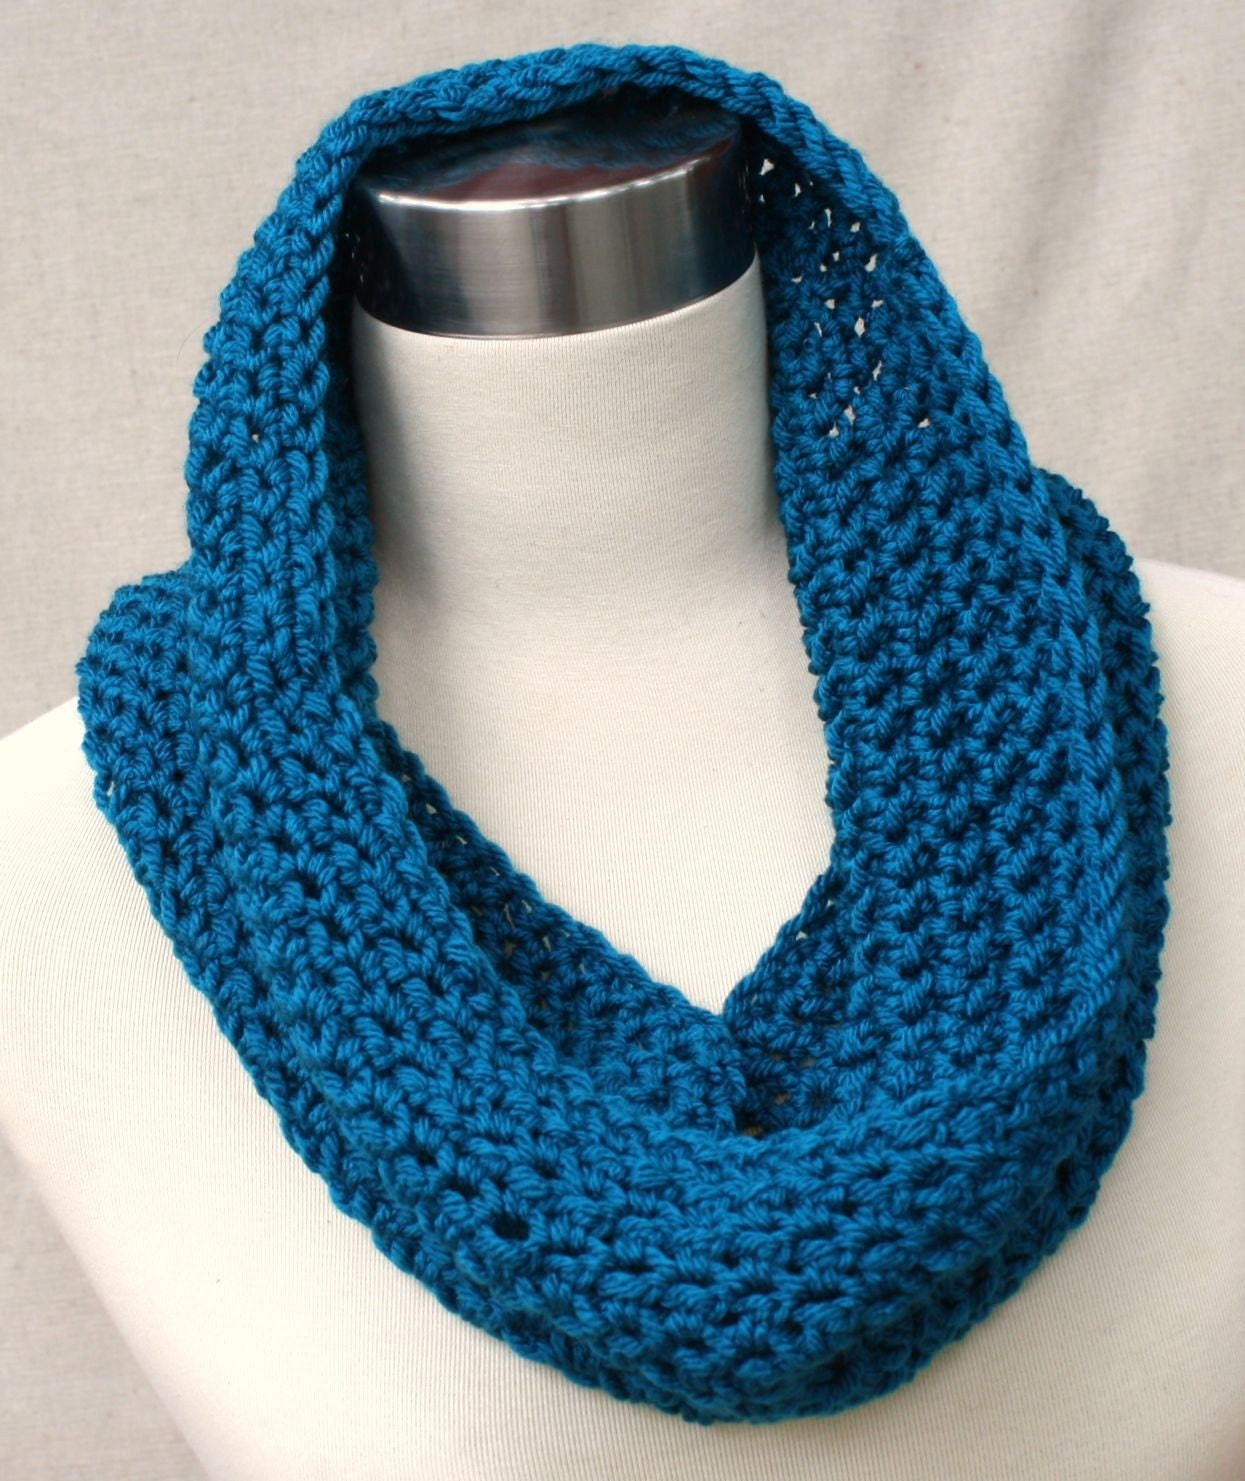 Crochet Patterns Neck Scarves : Crochet Scarf PATTERN PDF Format Pattern Neck Warmer Pattern